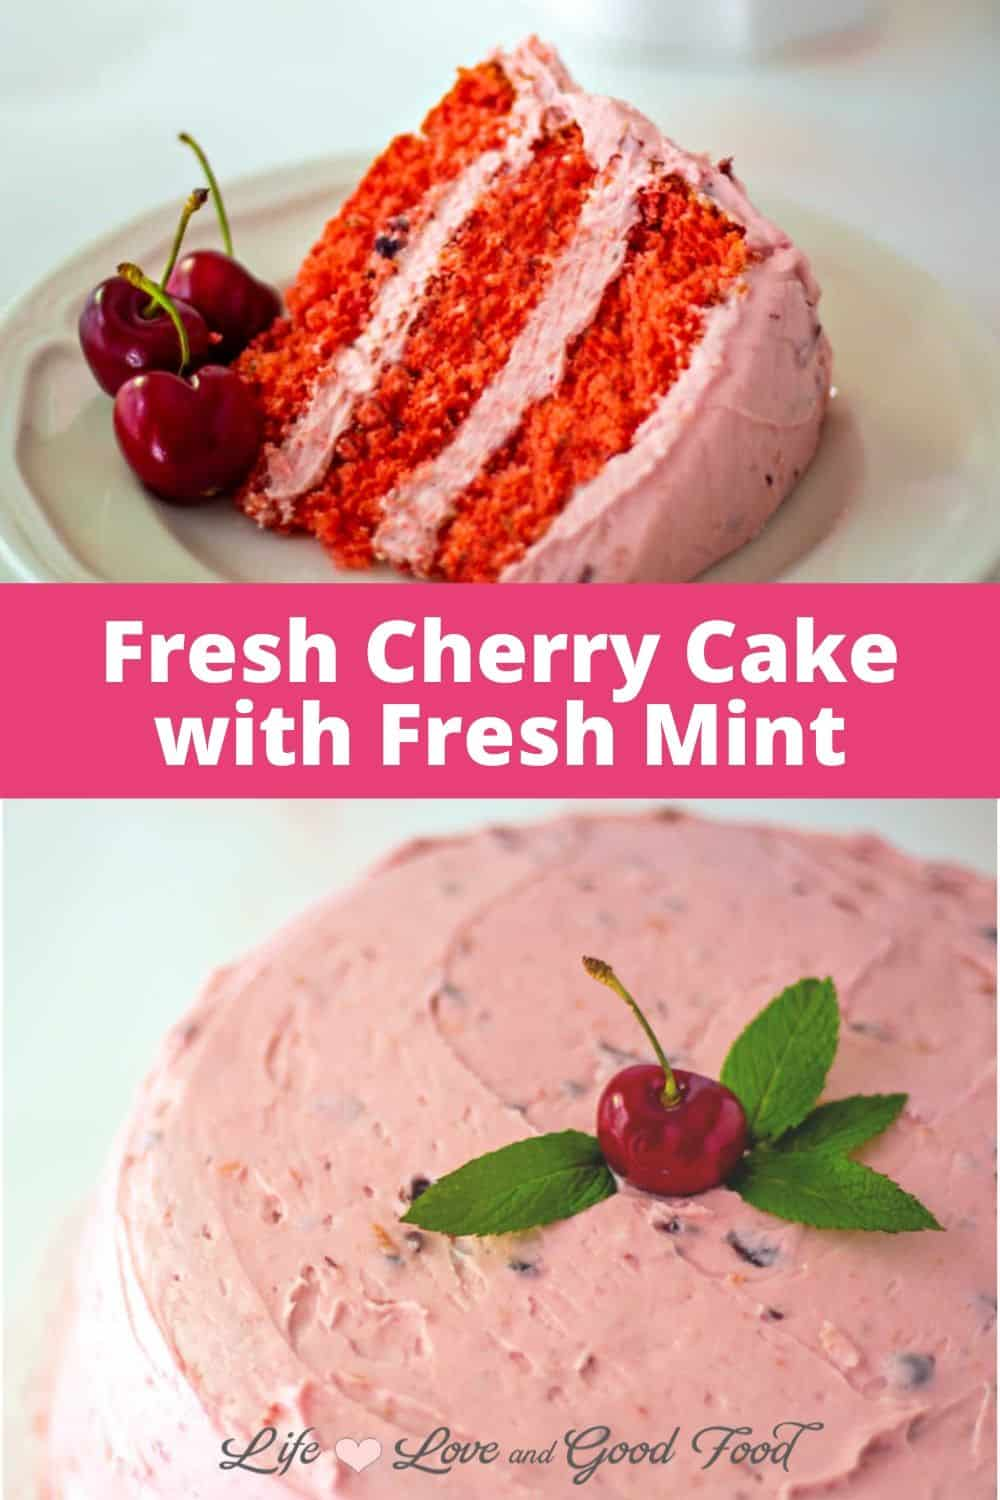 Fresh Cherry Cake with fresh mint infused into the batter and topped with a creamy cherry buttercream frosting is a delicious and impressive Summertime cherry dessert. This semi-homemade three-layer cake starts with a white cake mix, a package of cherry gelatin, and plenty of fresh cherries to give it the best flavor.